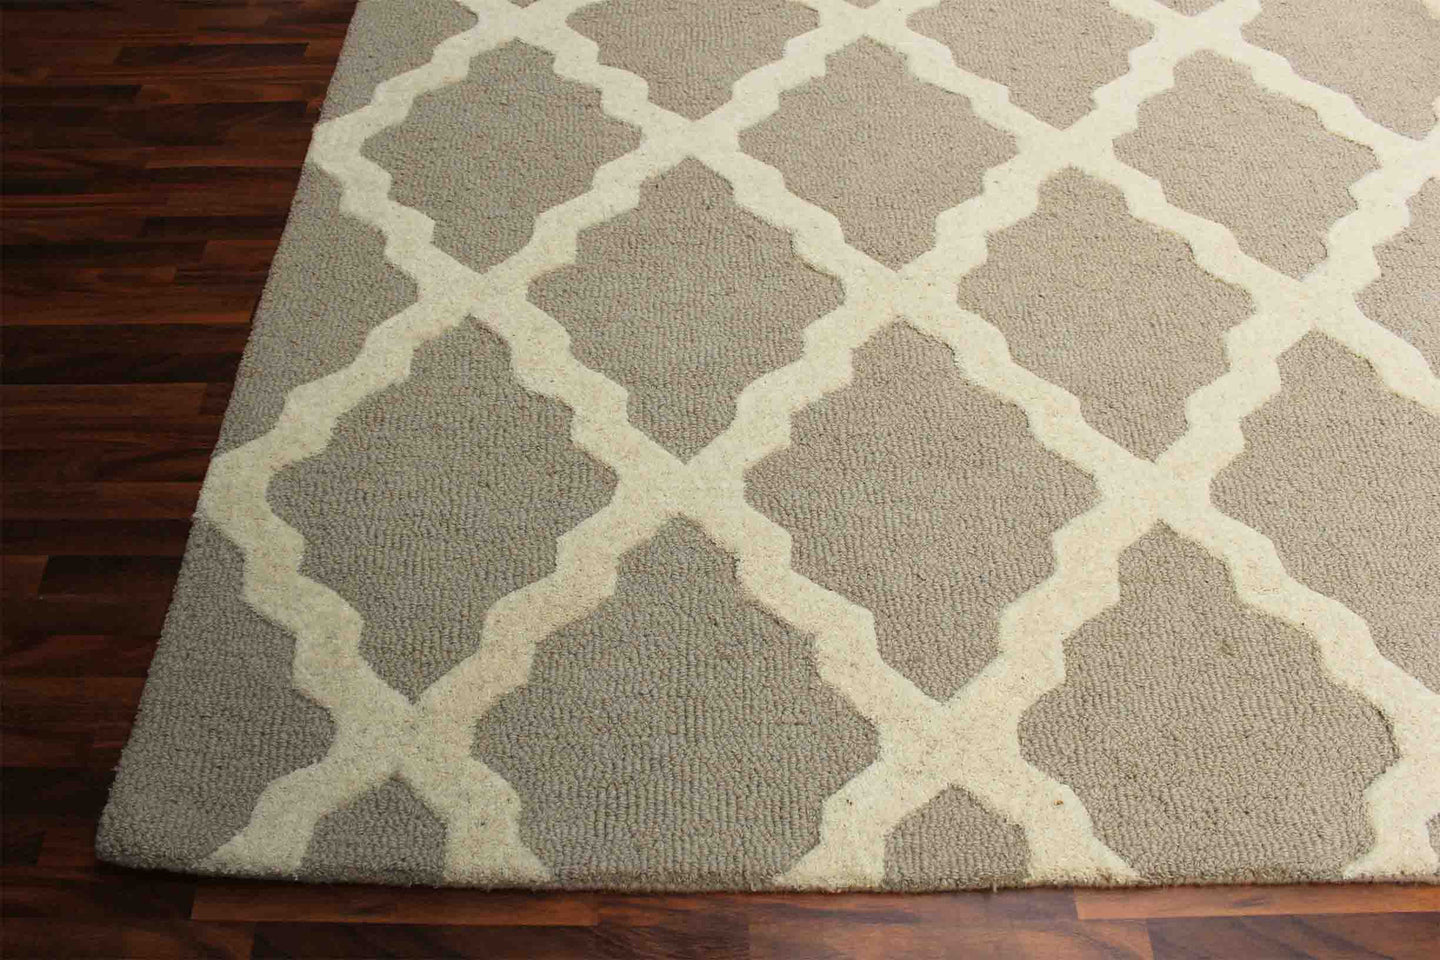 Grill Brown 5 x 8 Floral Persian Style Wool Area Rug - TulipFiesta - 1